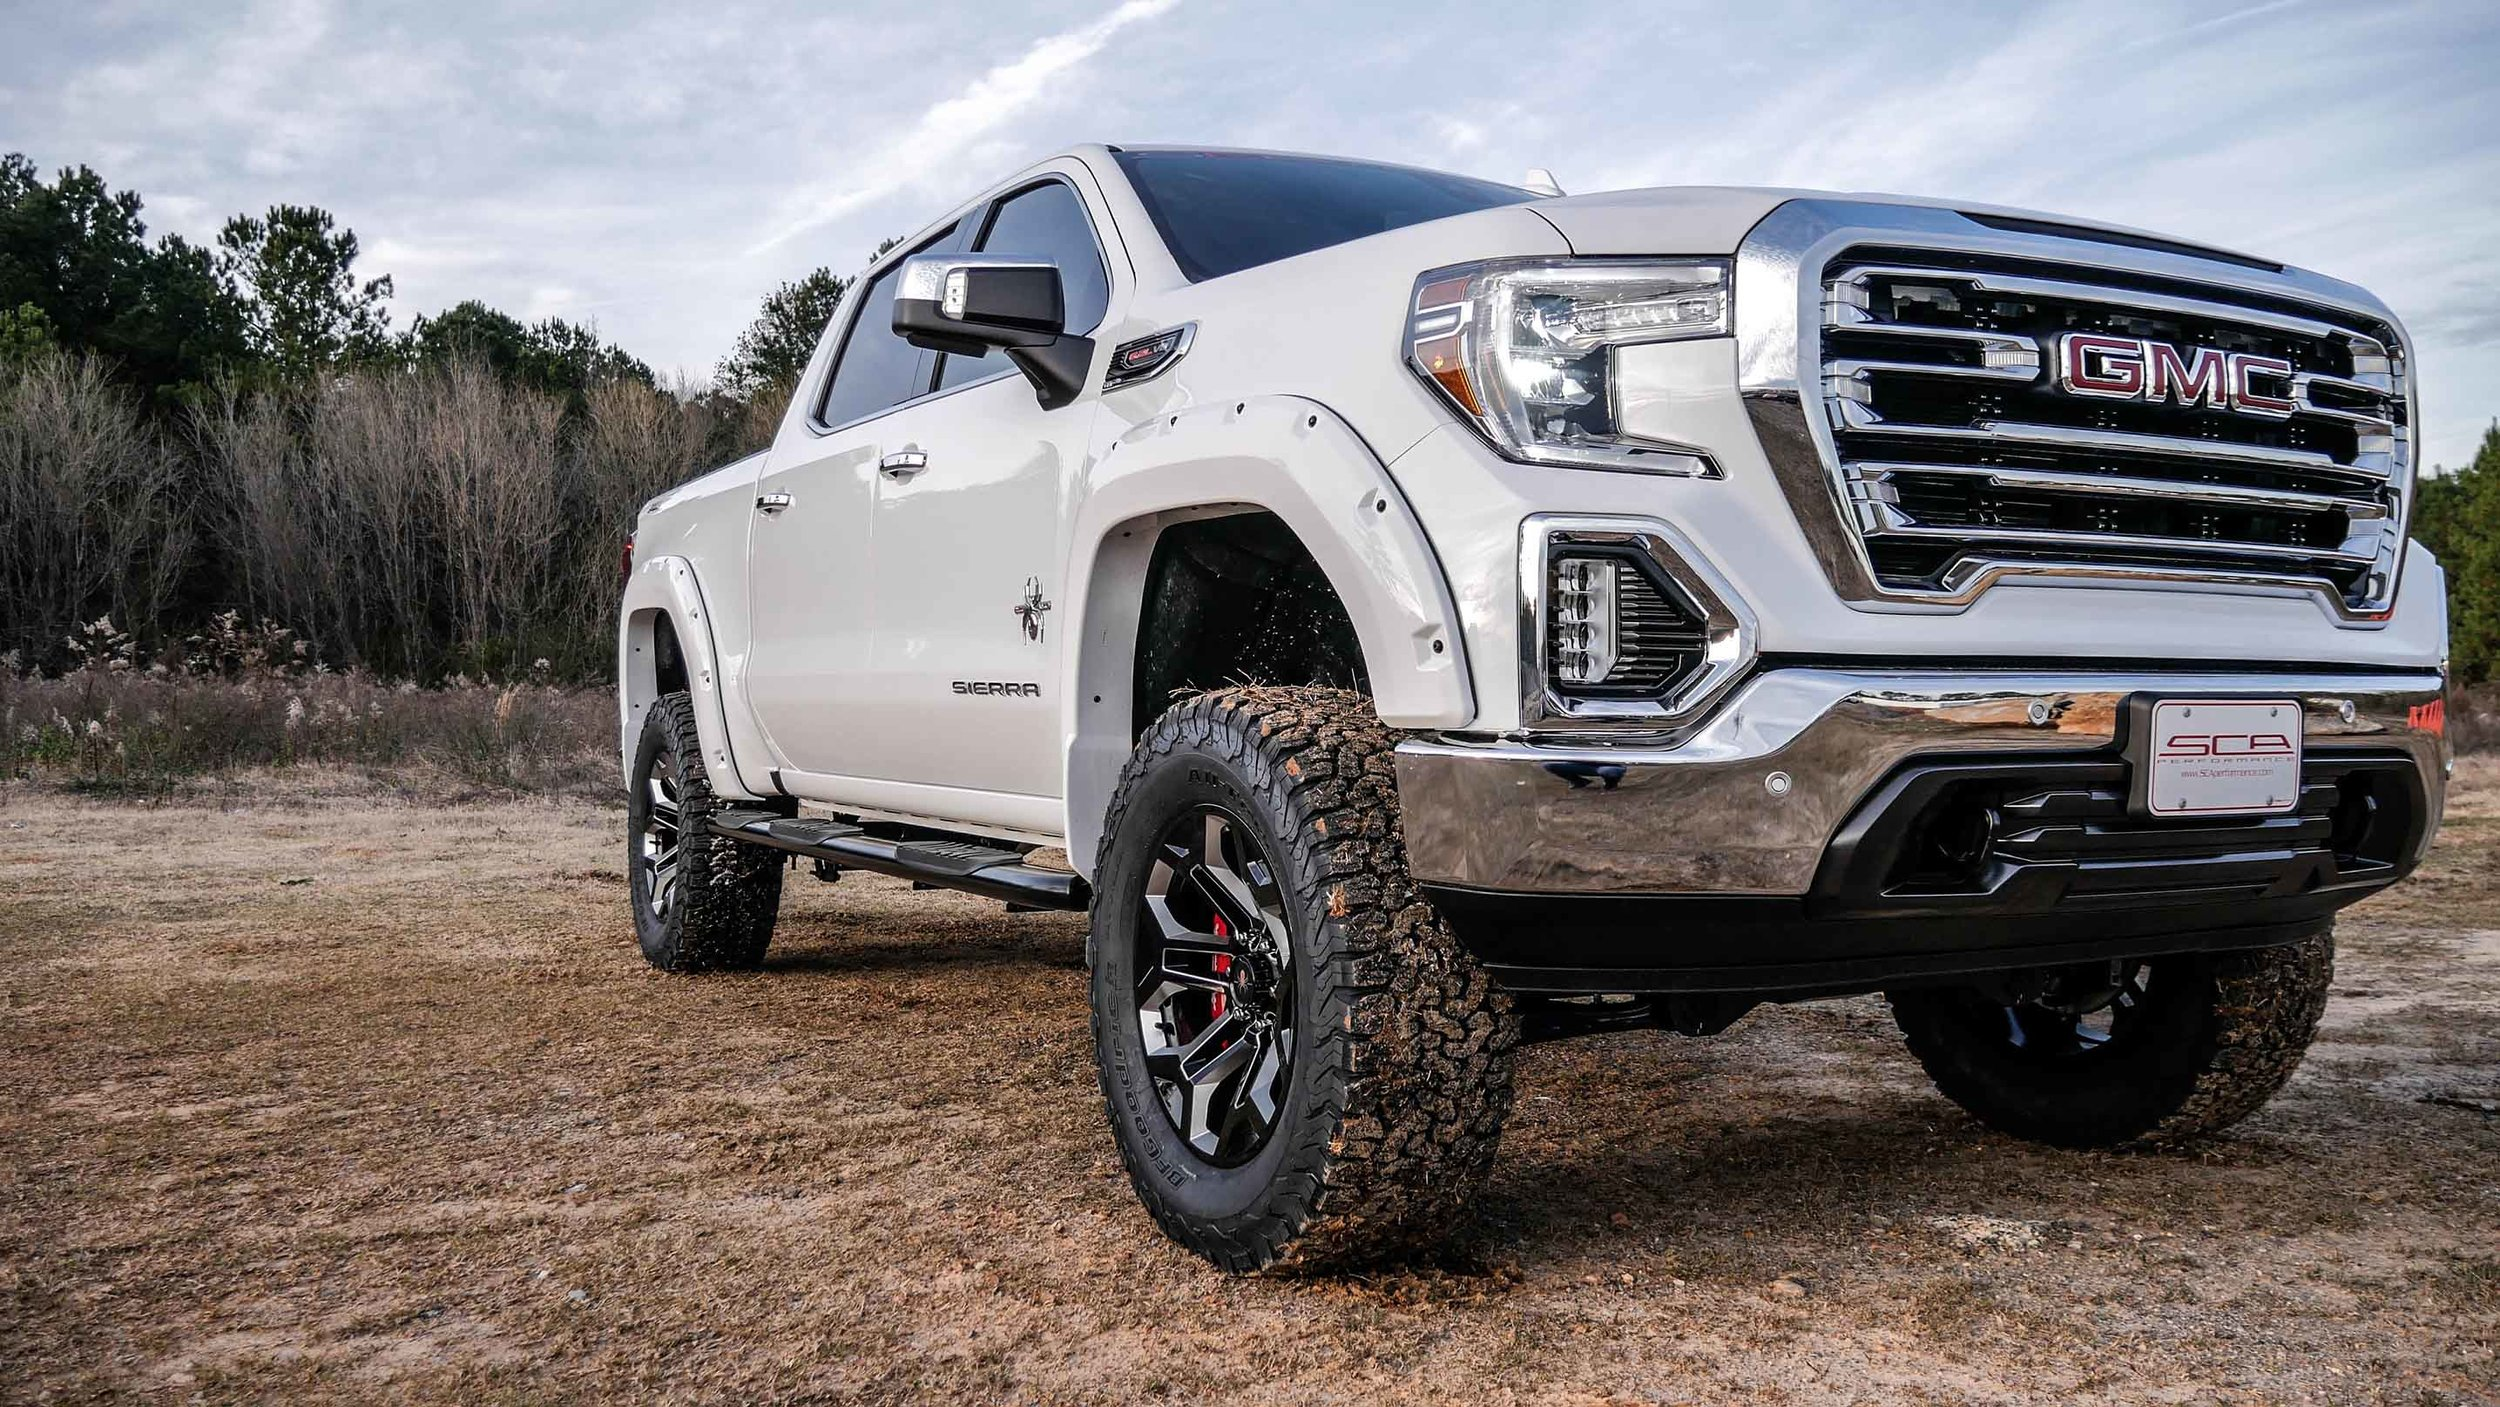 2019 GMC Sierra Black Widow White Side Qtr Close.jpg